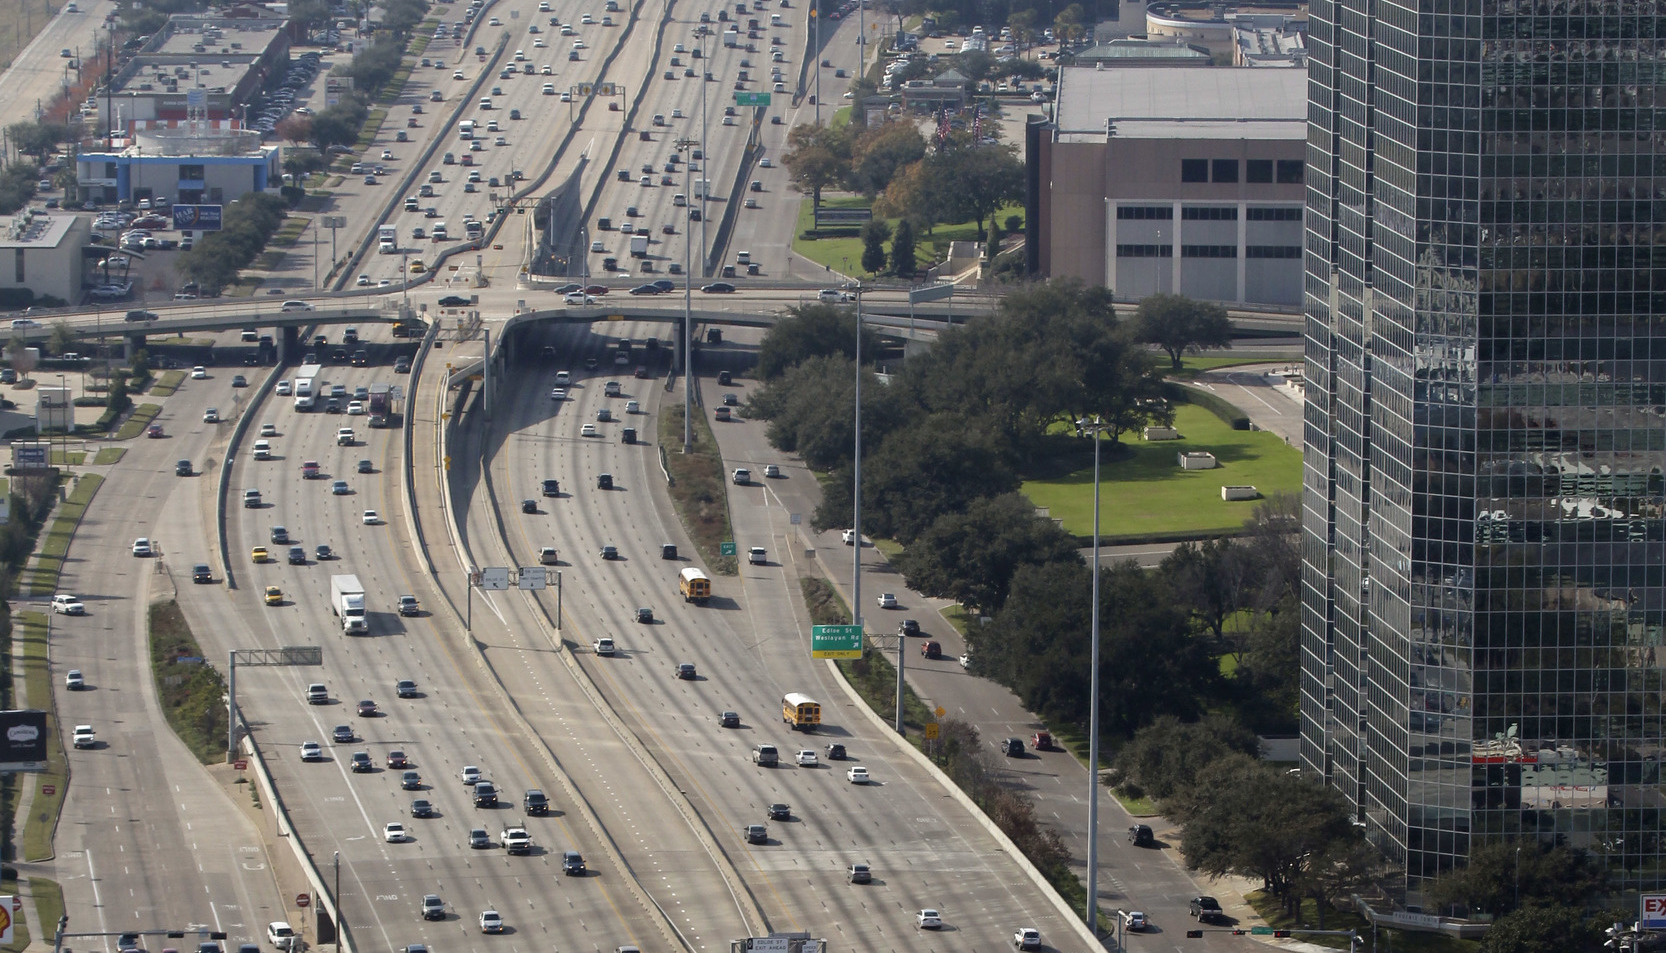 Holiday Traffic The Worst Roads And Interstates To Travel